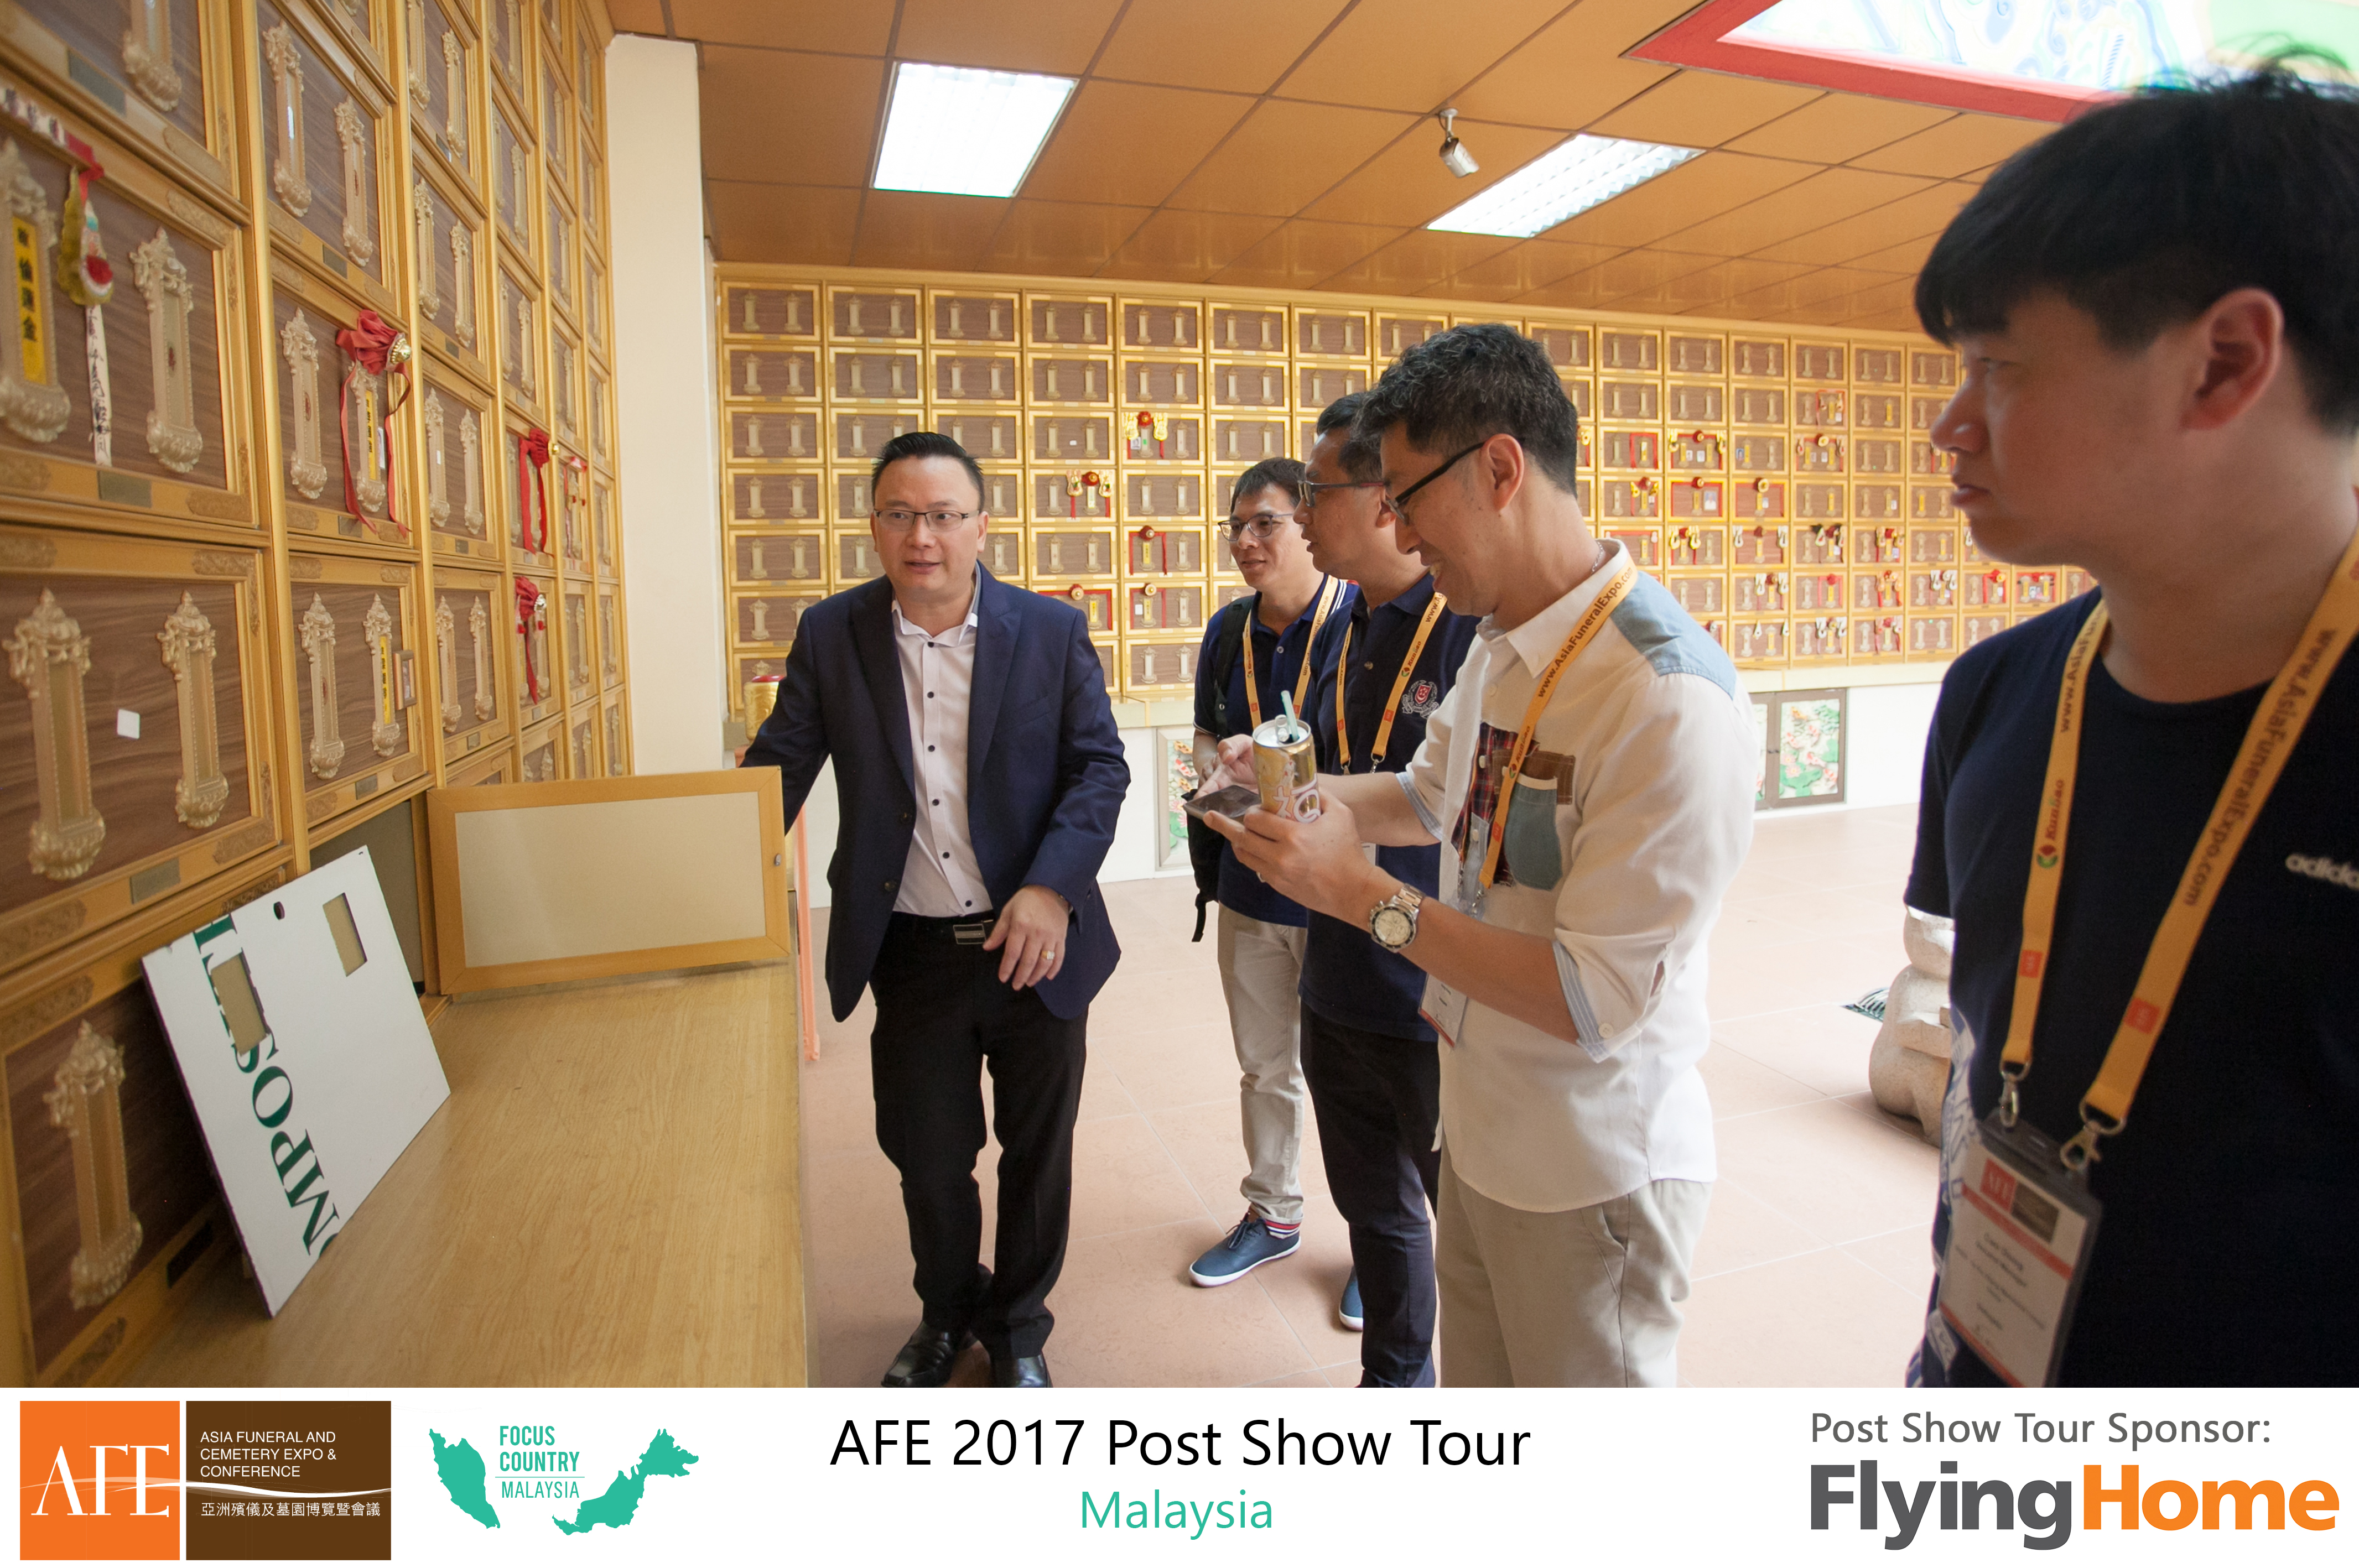 AFE Post Show Tour 2017 Day 4 - 12